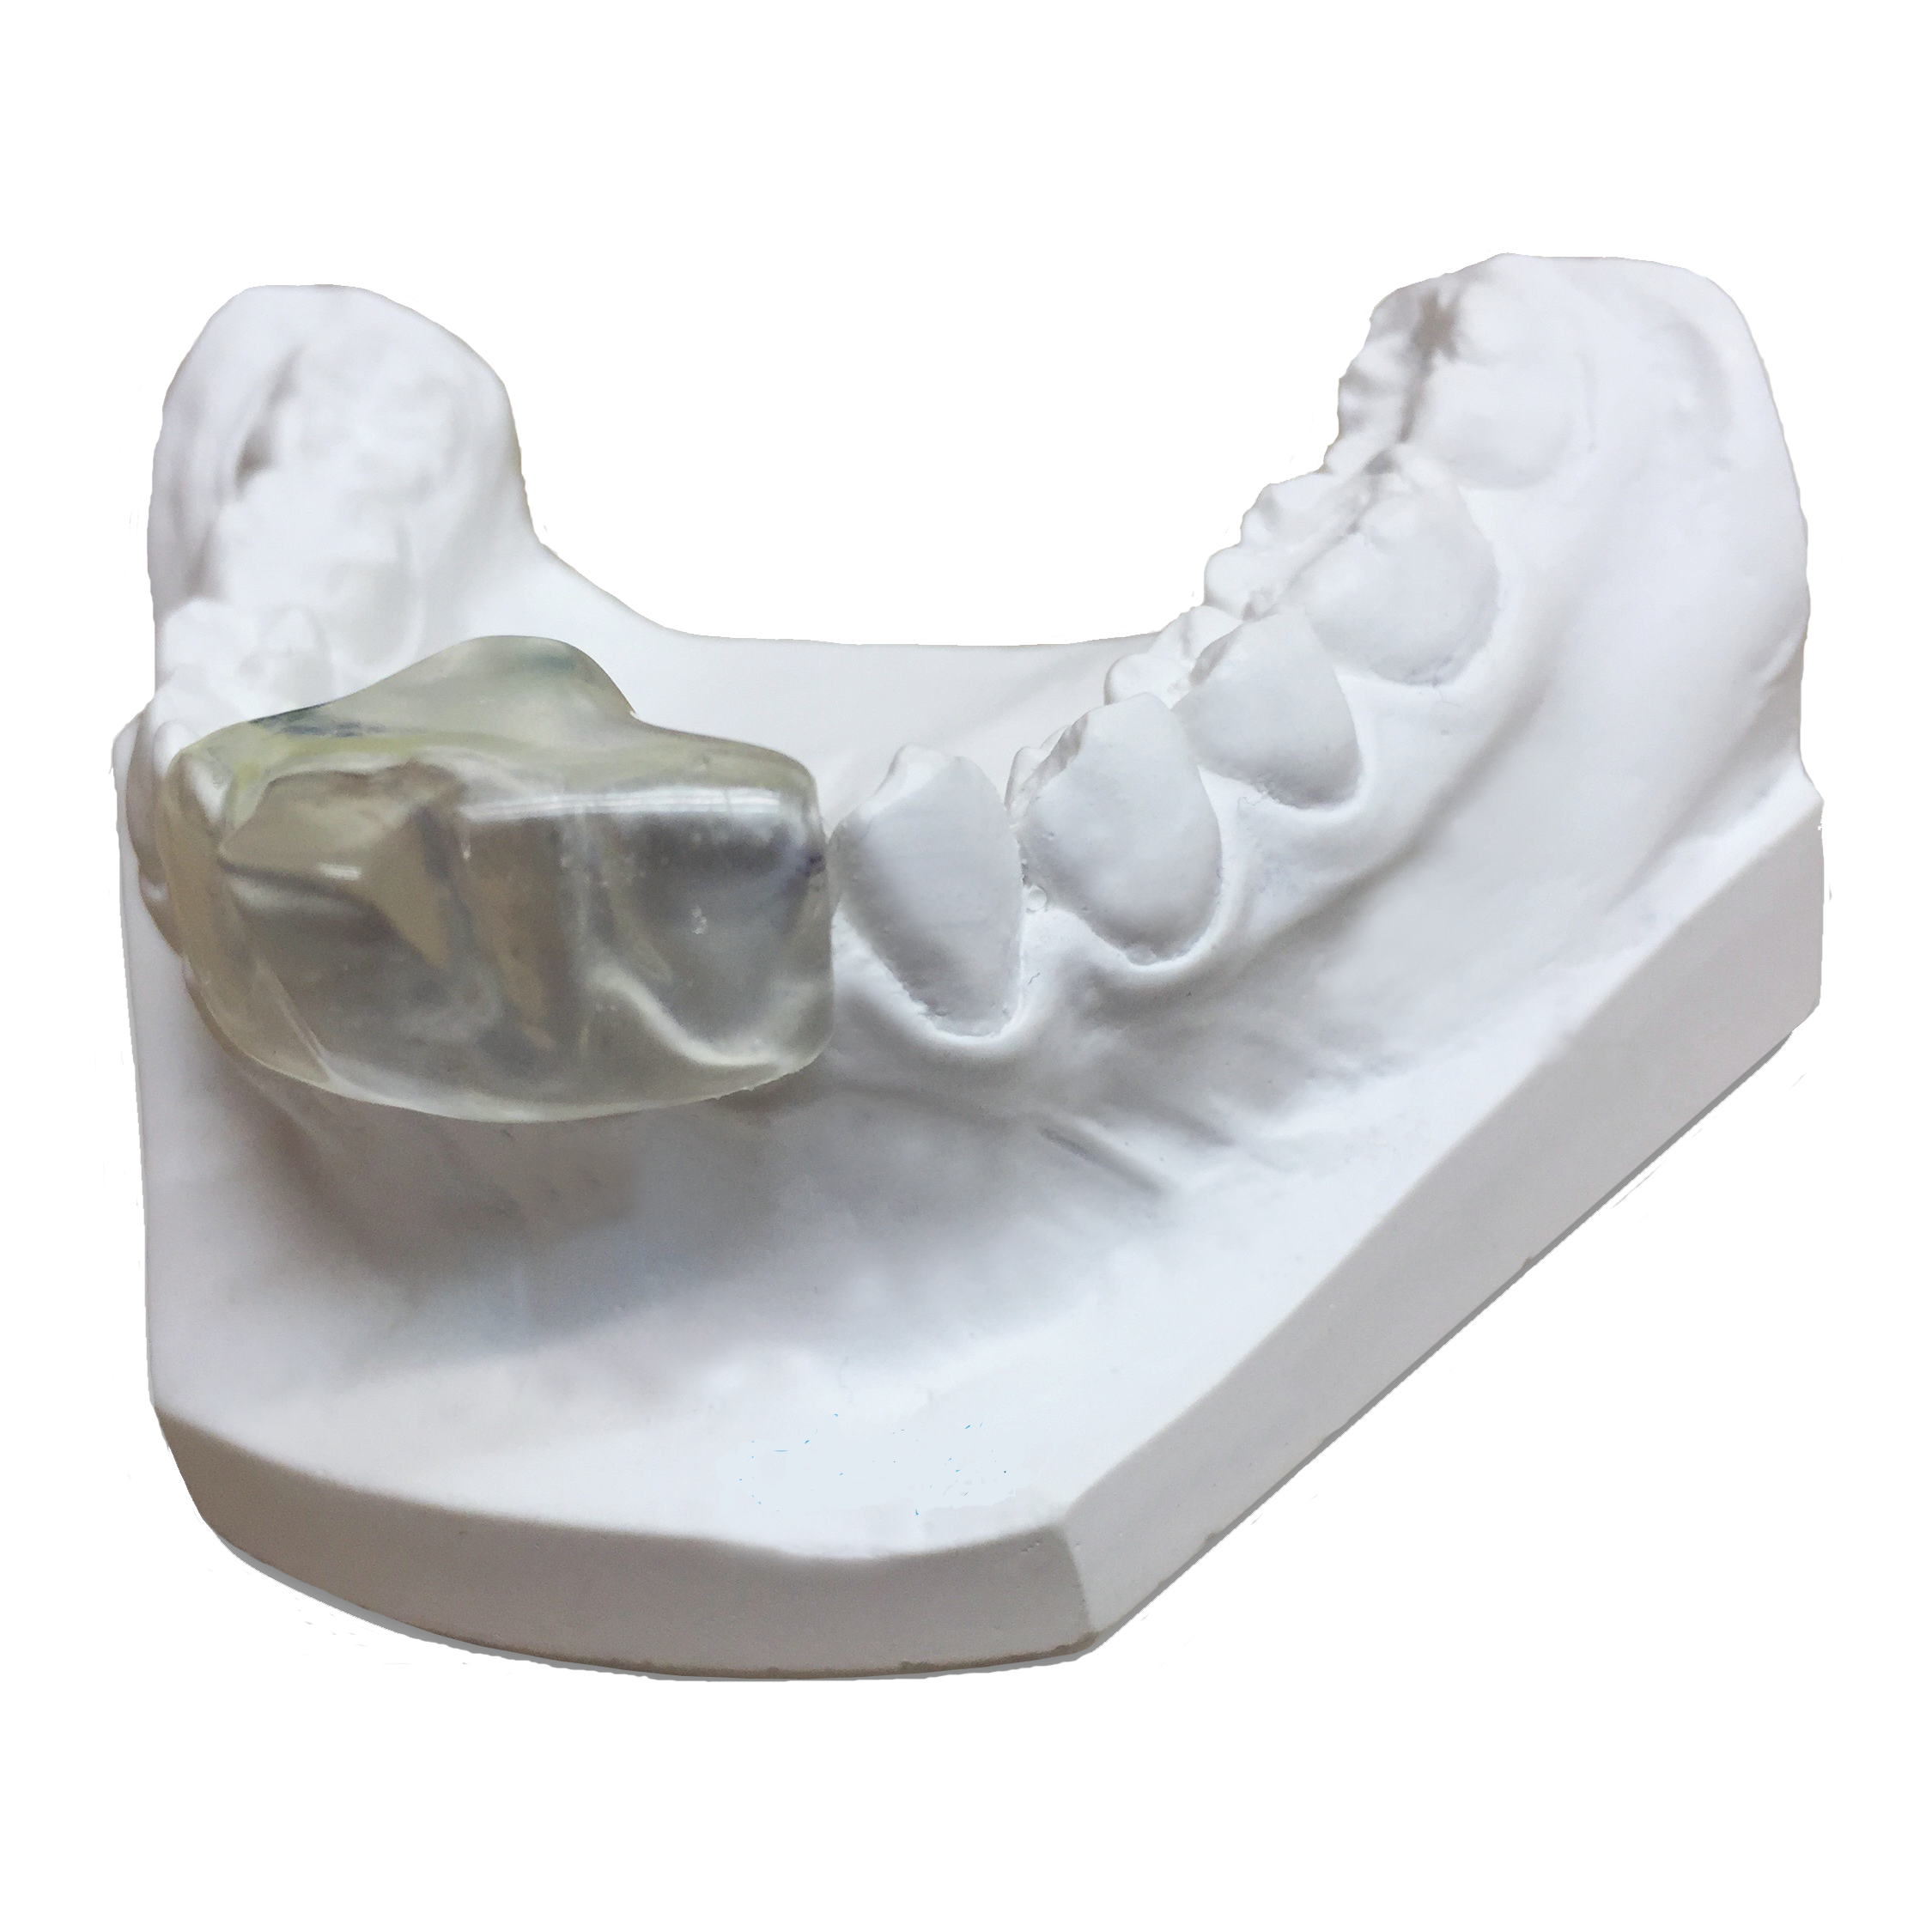 Bruxism Device